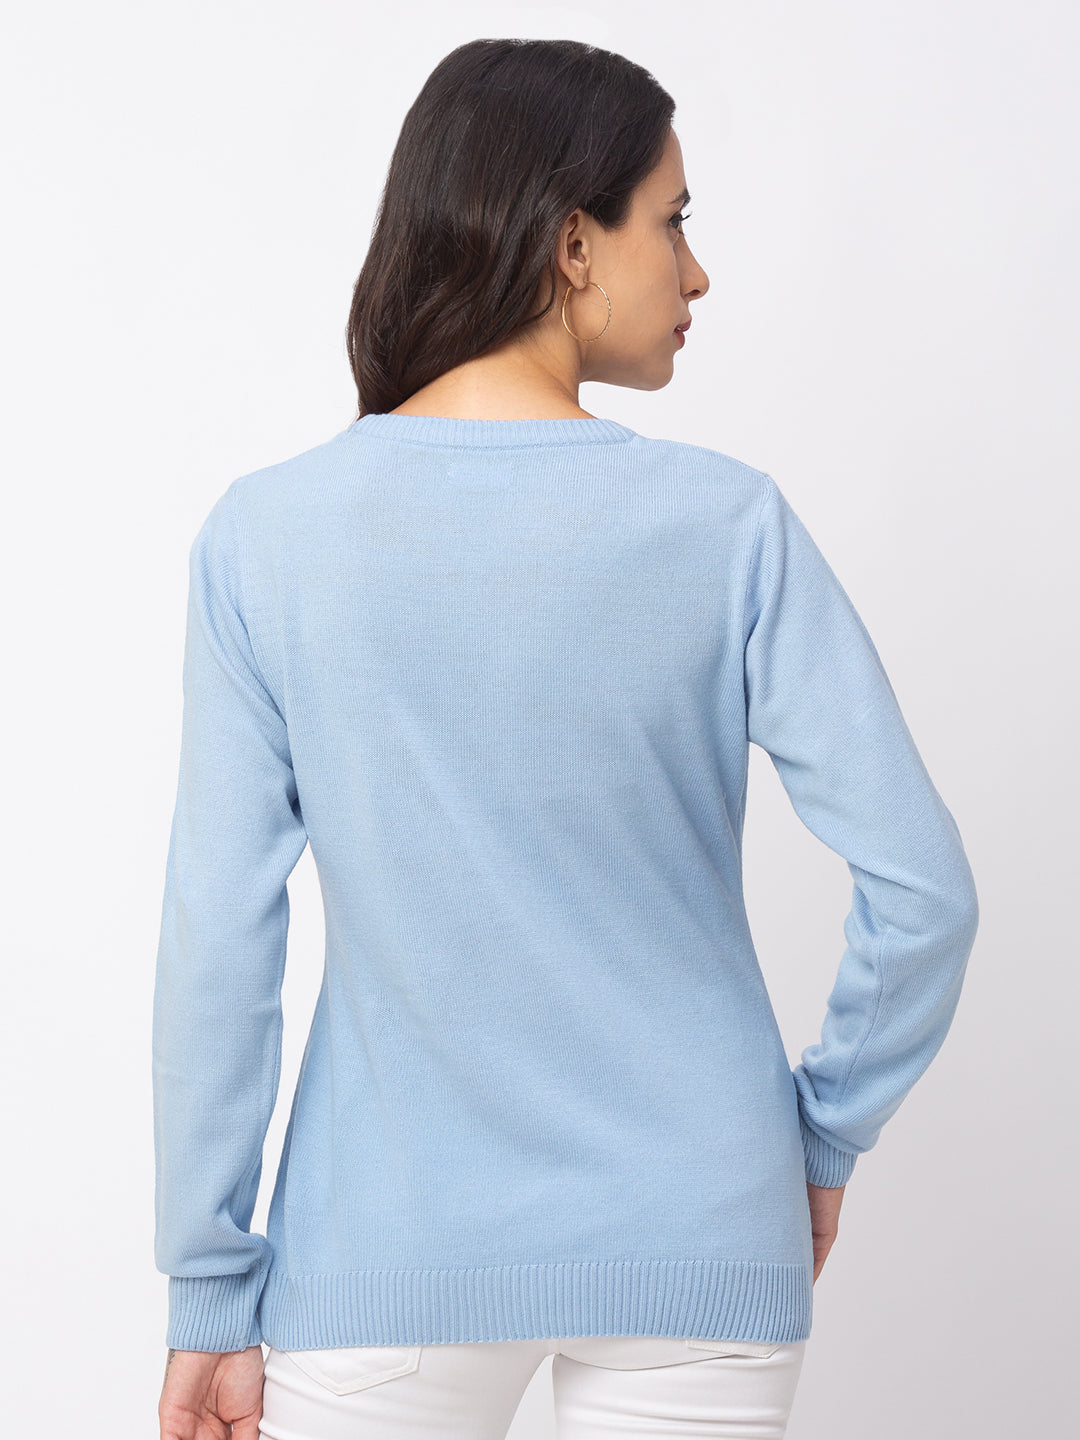 Globus Sky Solid Sweater-3